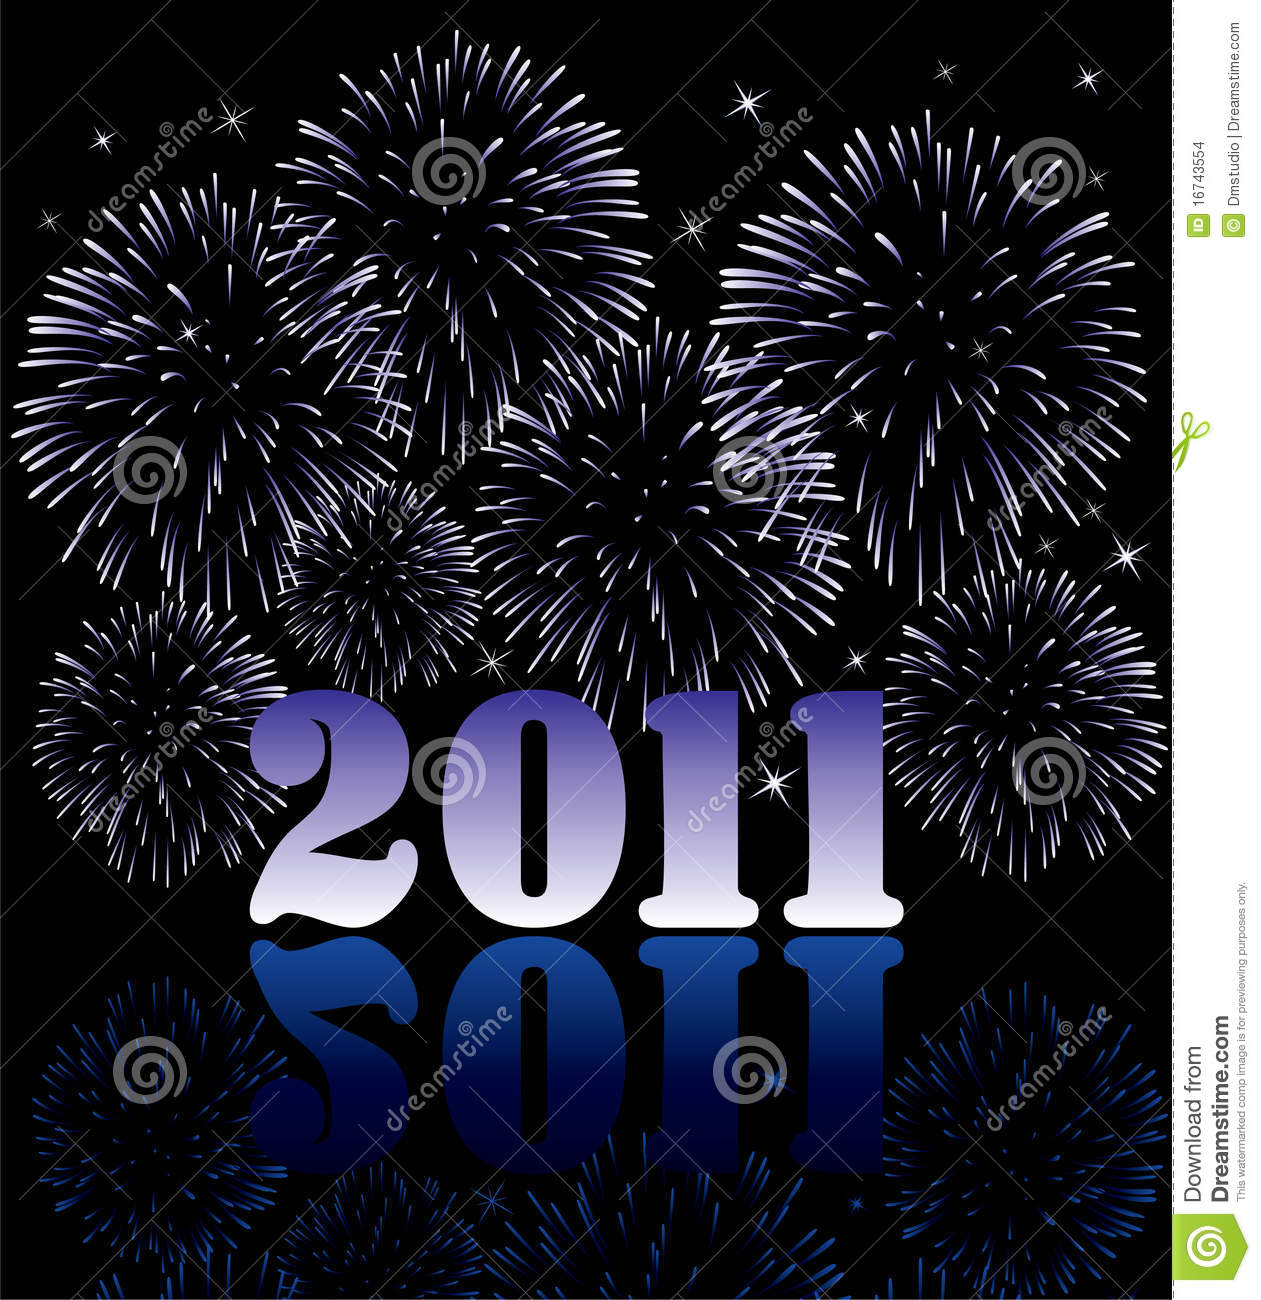 2011 numbers with fireworks